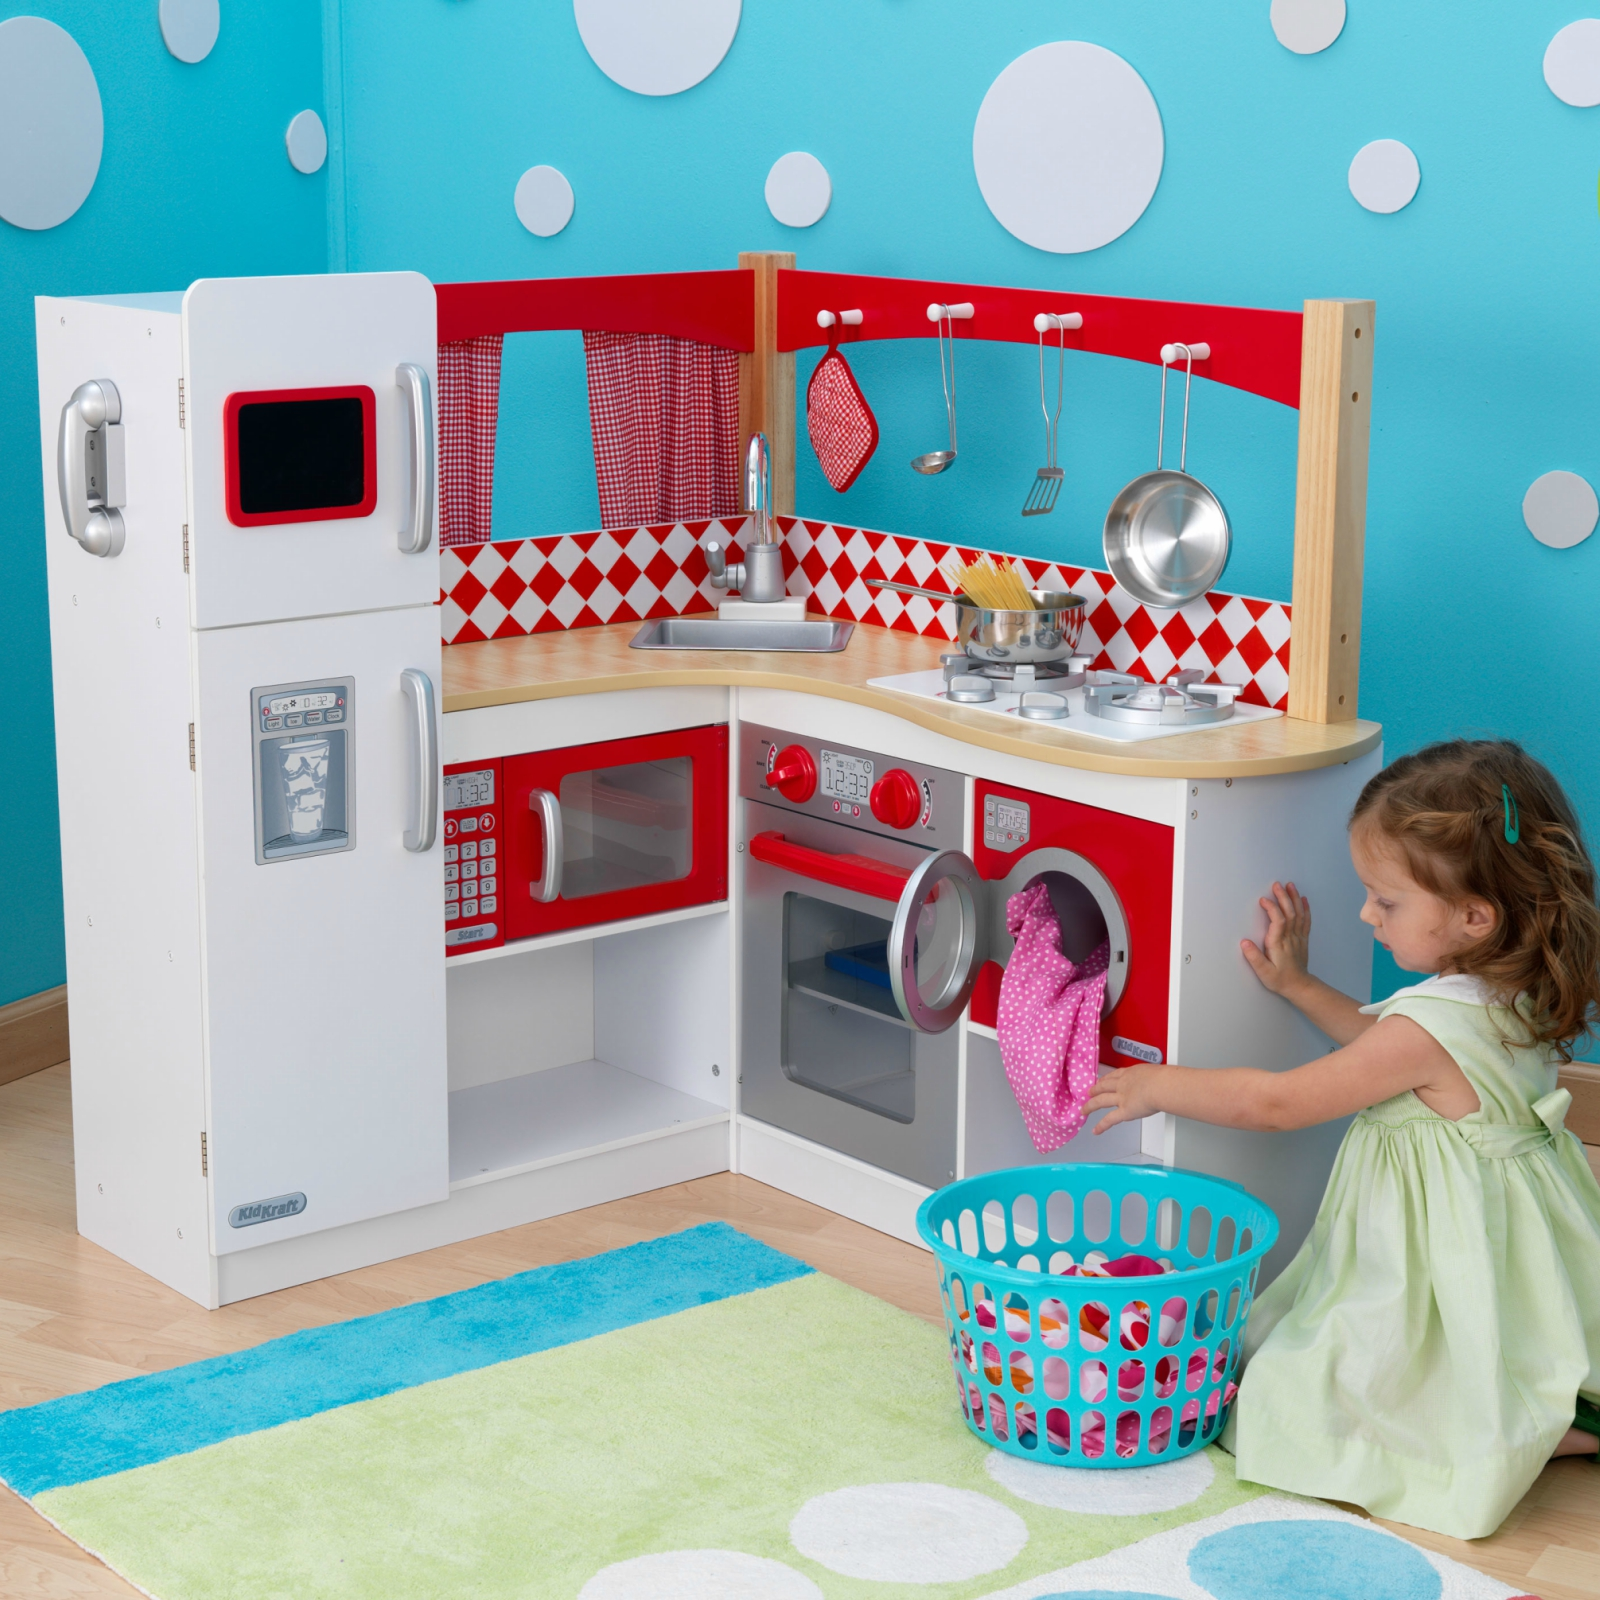 Cucine Per Bambini Kidkraft: Country kitchen imaginary play for kids wooden toys.